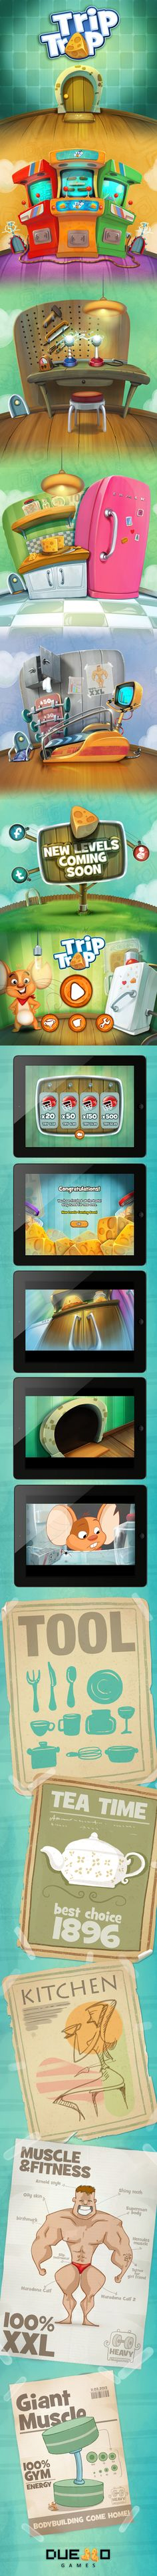 """TripTrap""  iphone/ipad game by Burç Pulathaneli, via Behance"